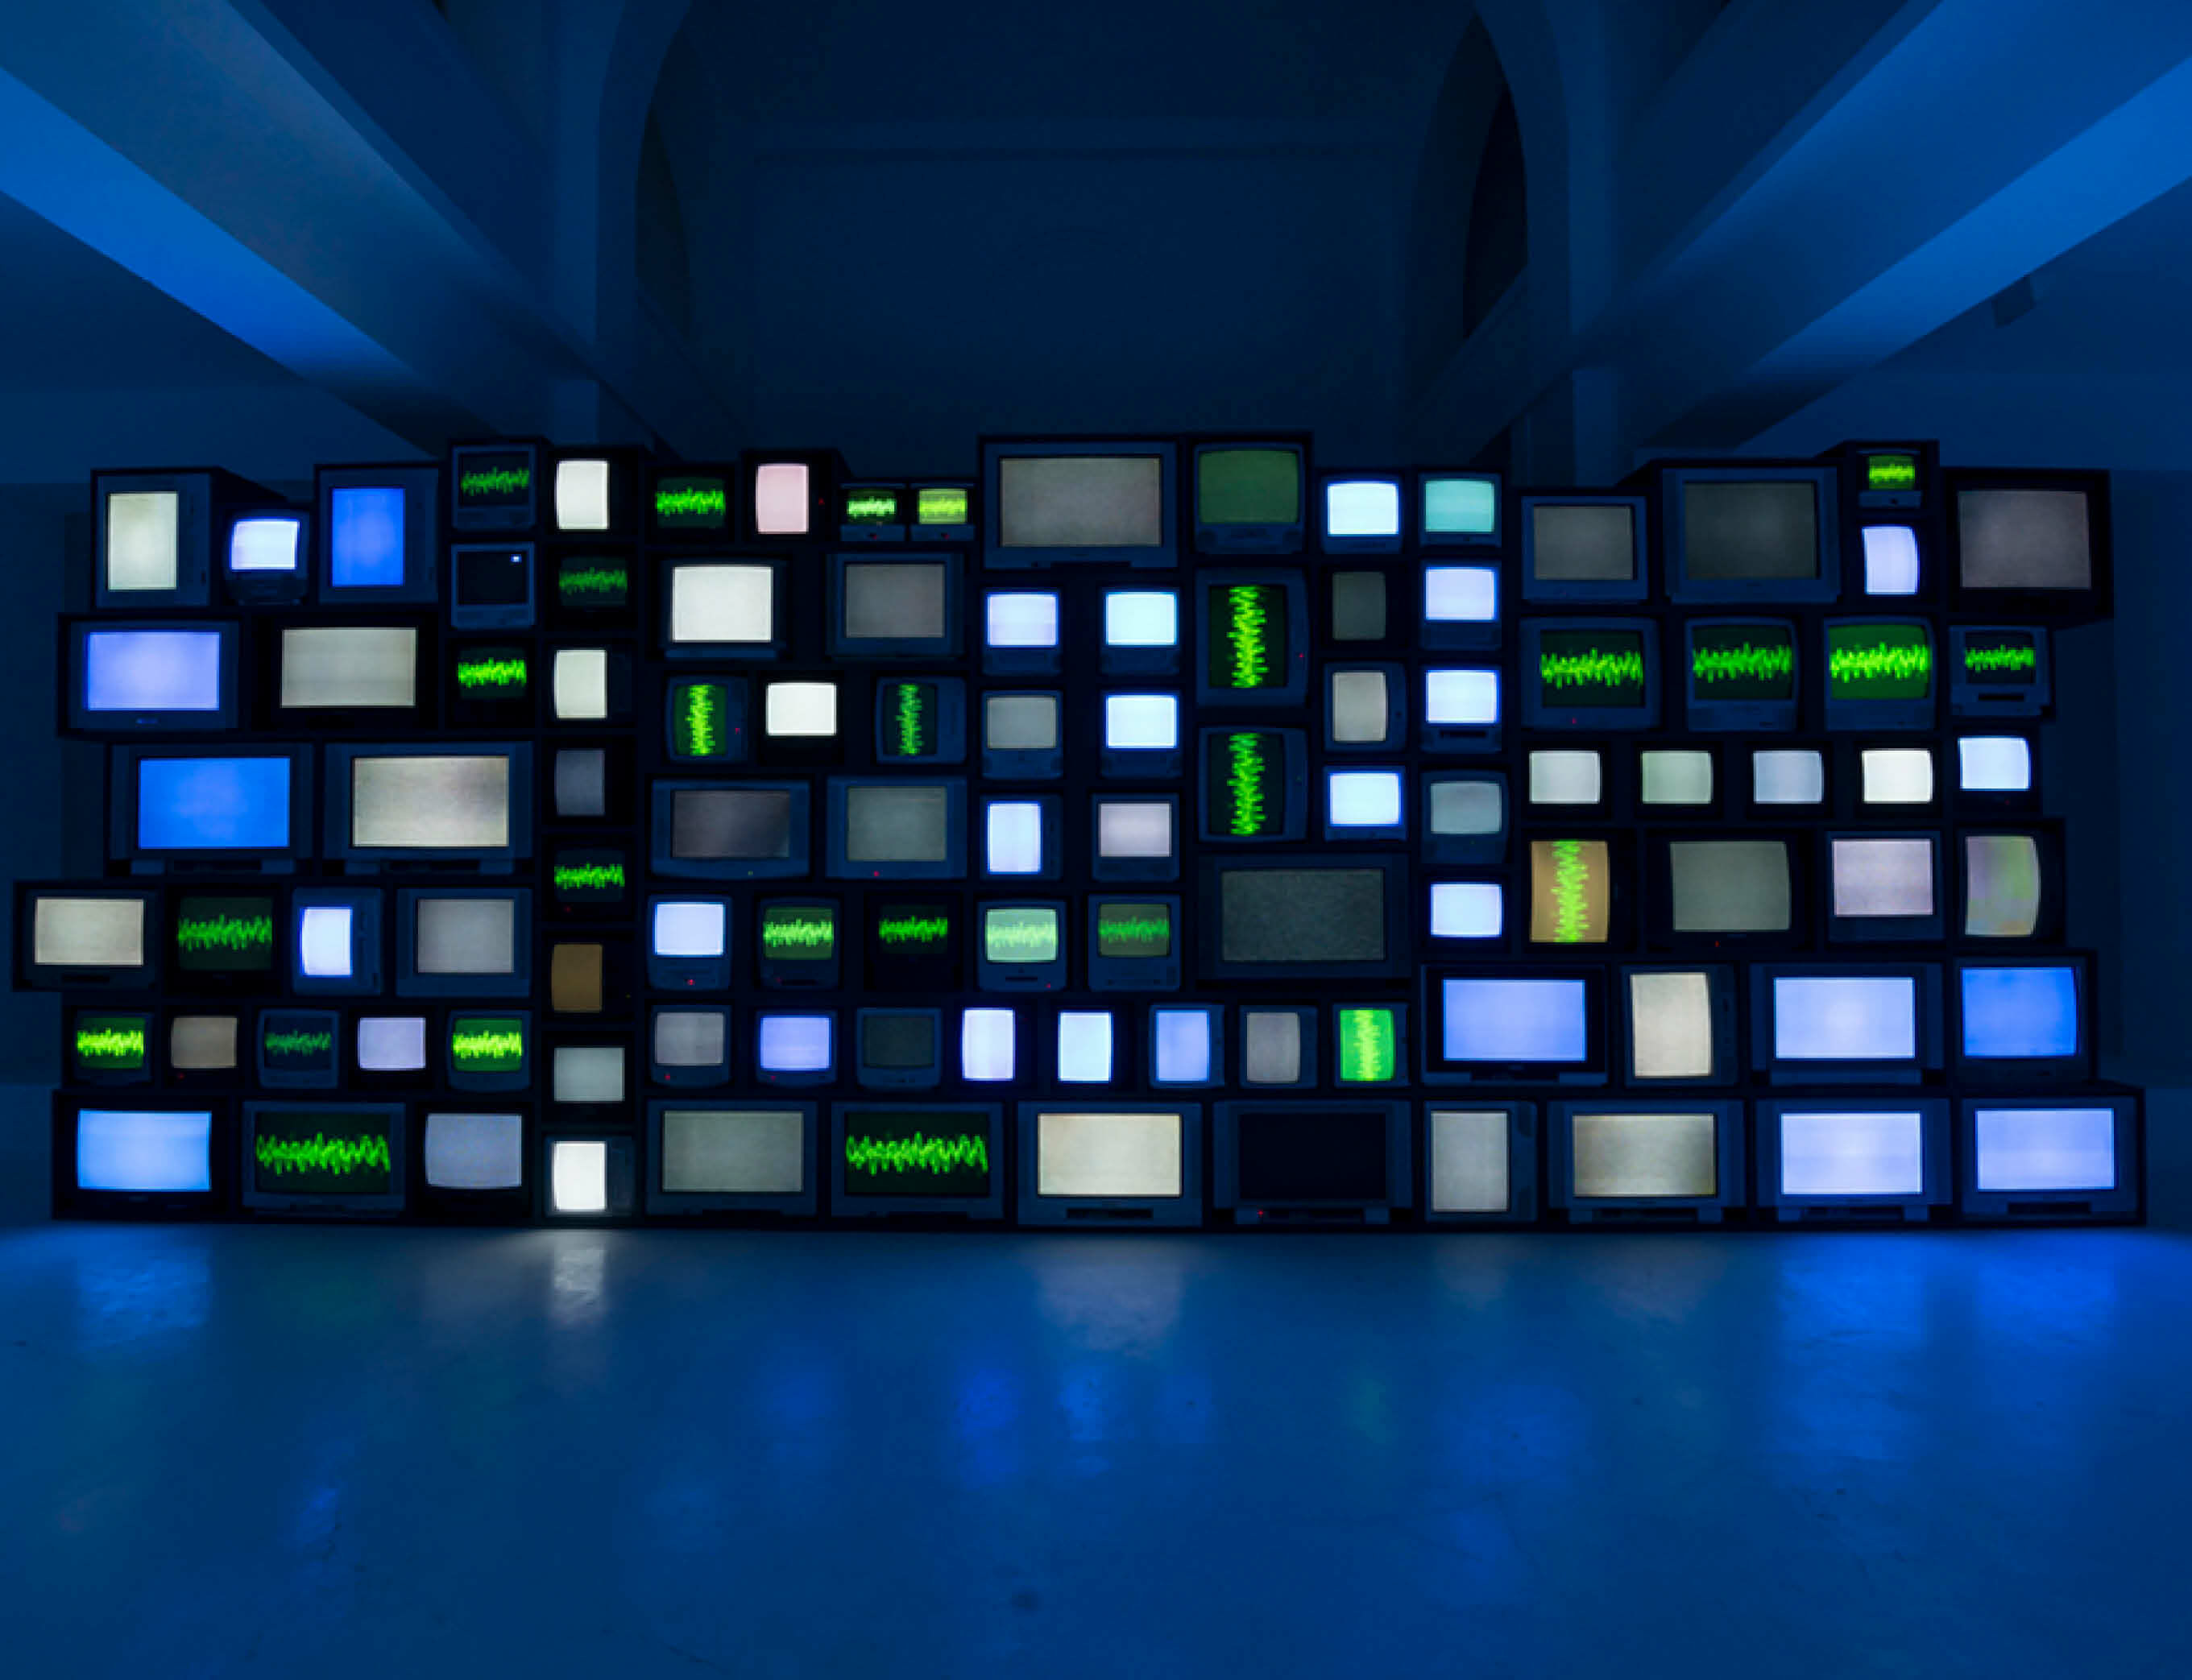 Susan Hiller presents new exhibition at OGR in Turin, Italy